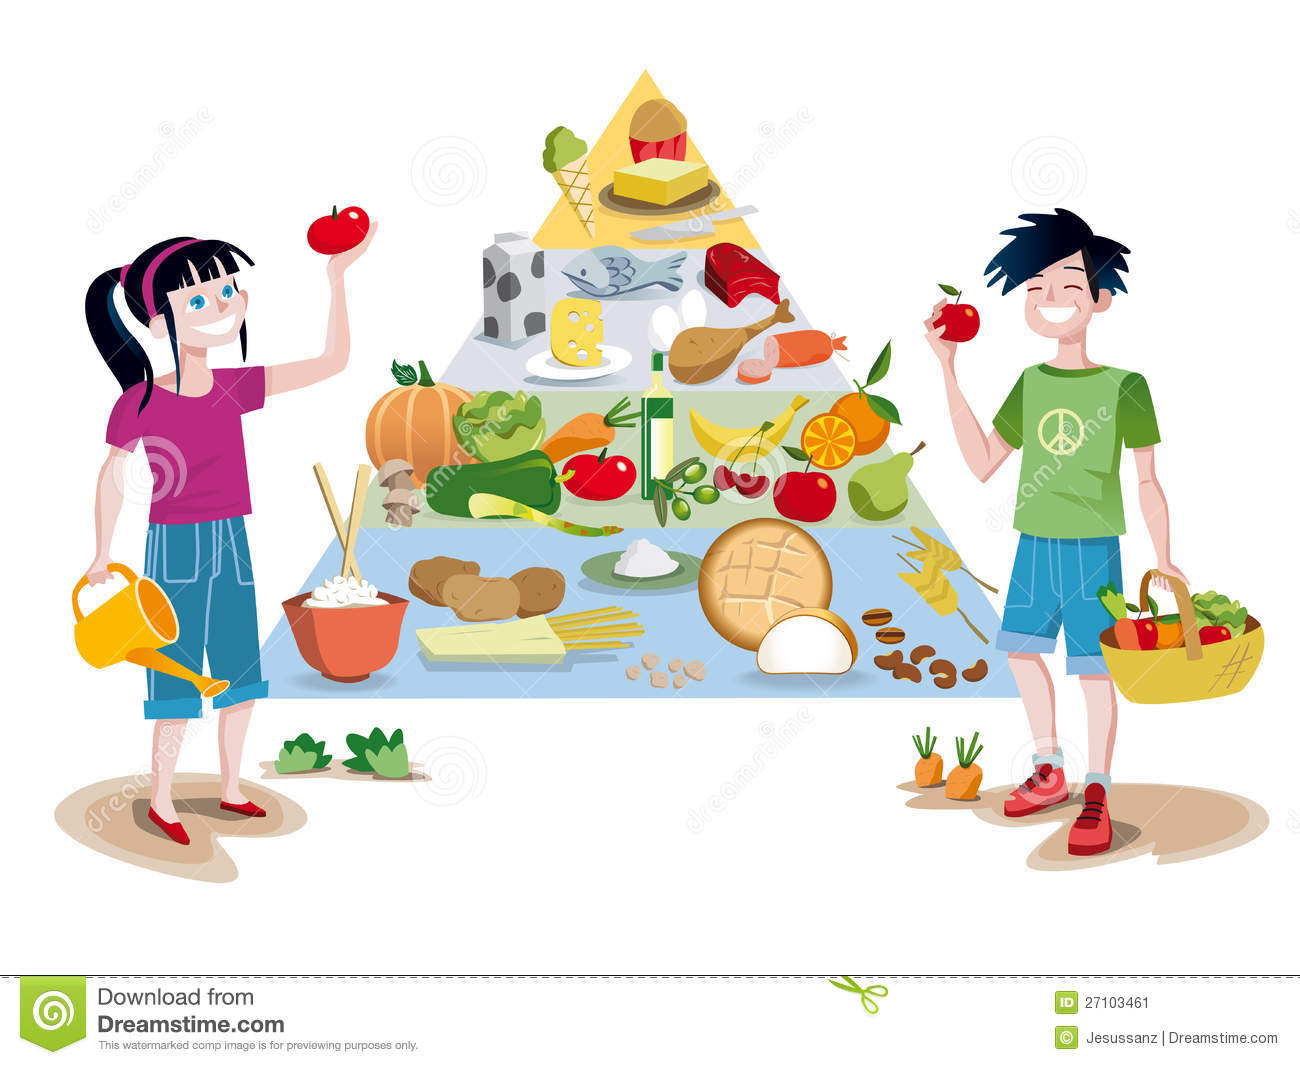 Children And Food Guide Pyramid Stock Vector Illustration Of Childs Eggs 27103461